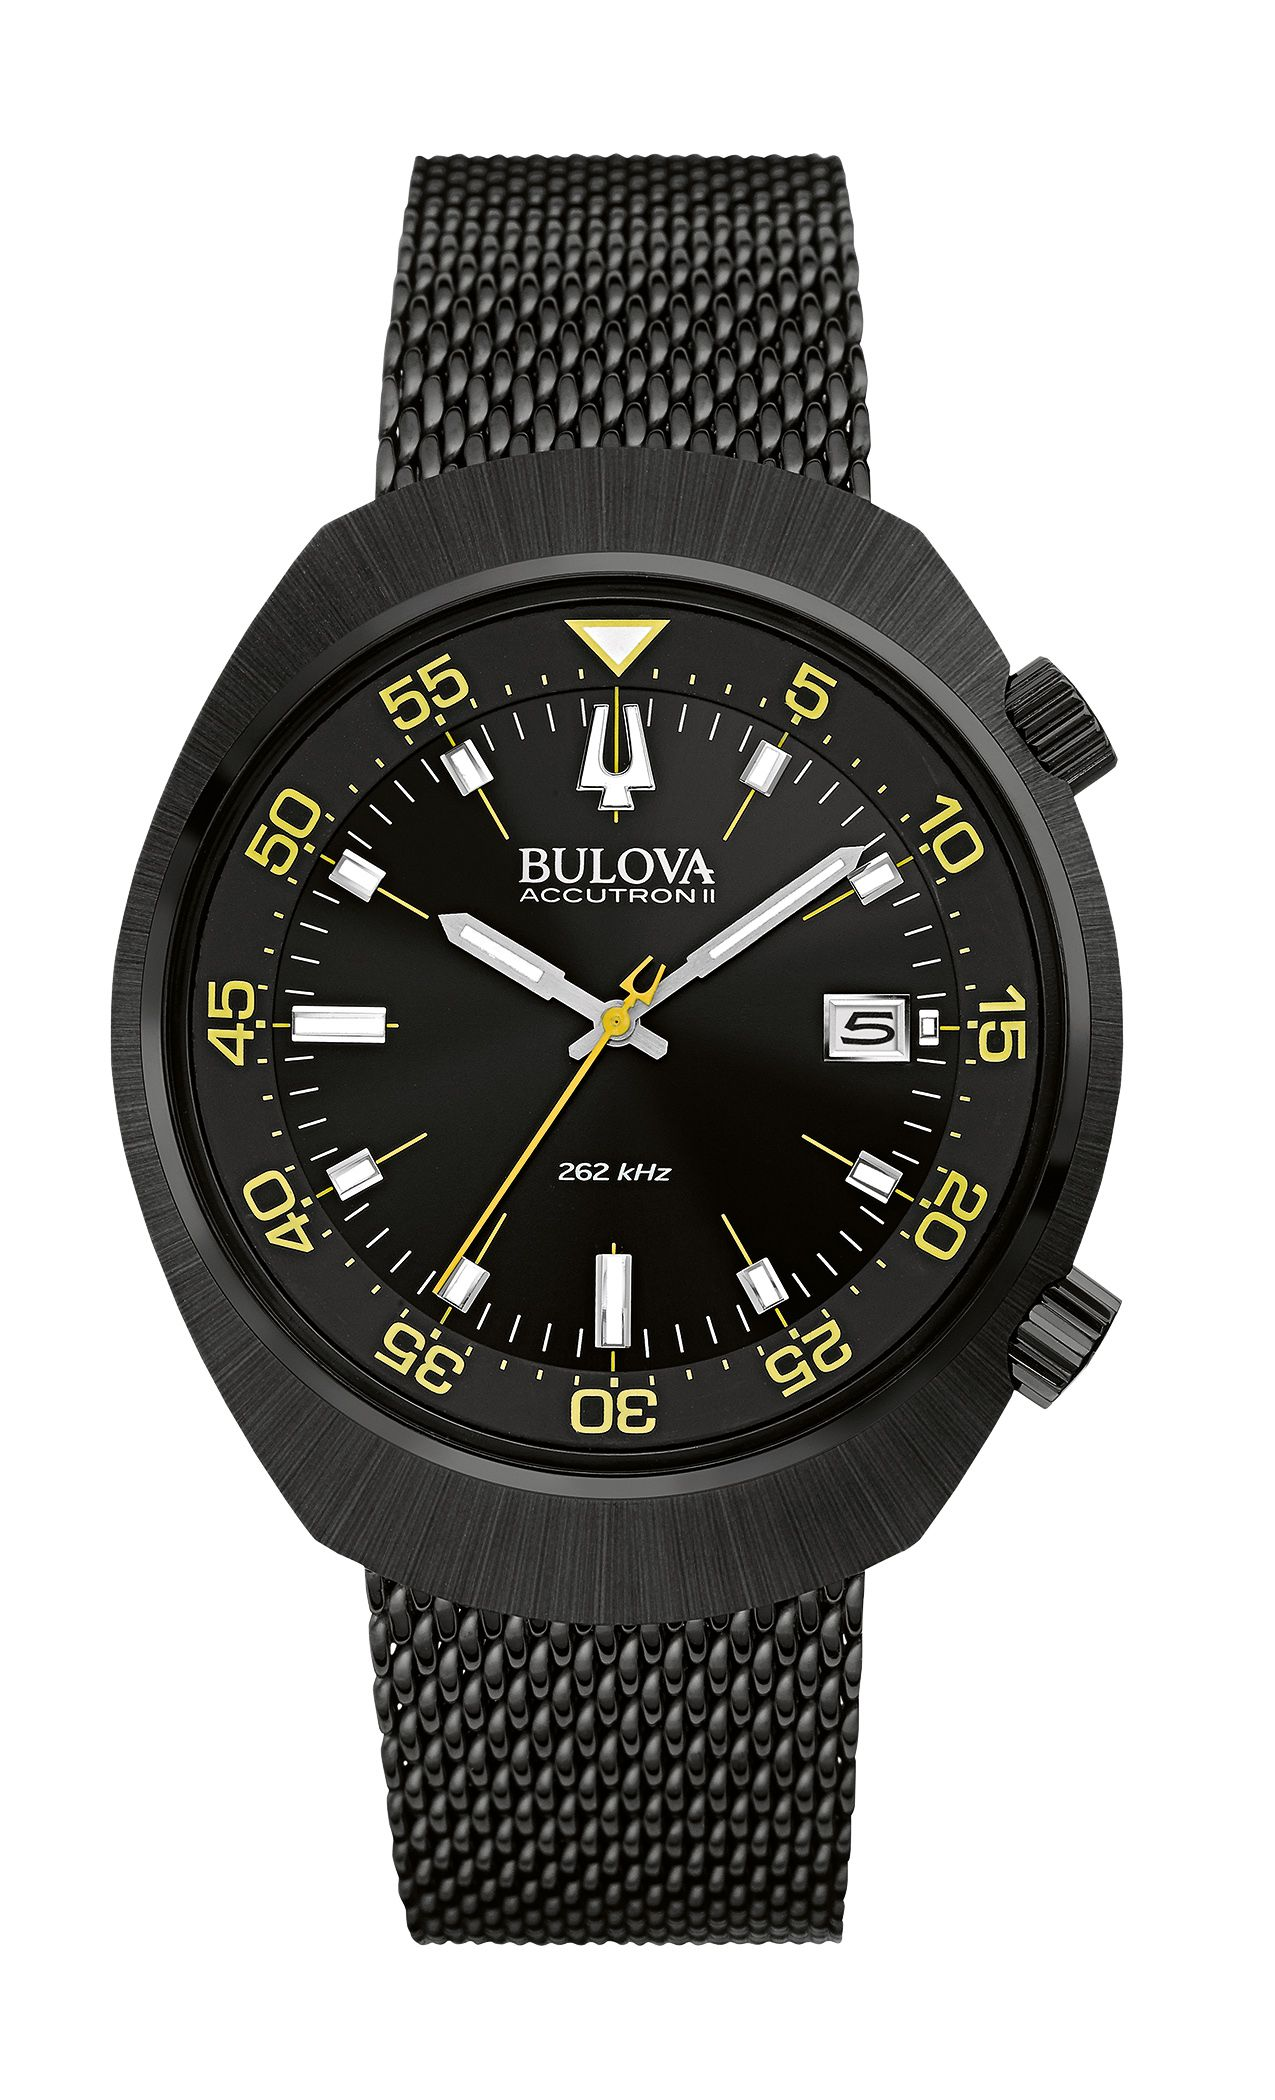 Dating bulova watches